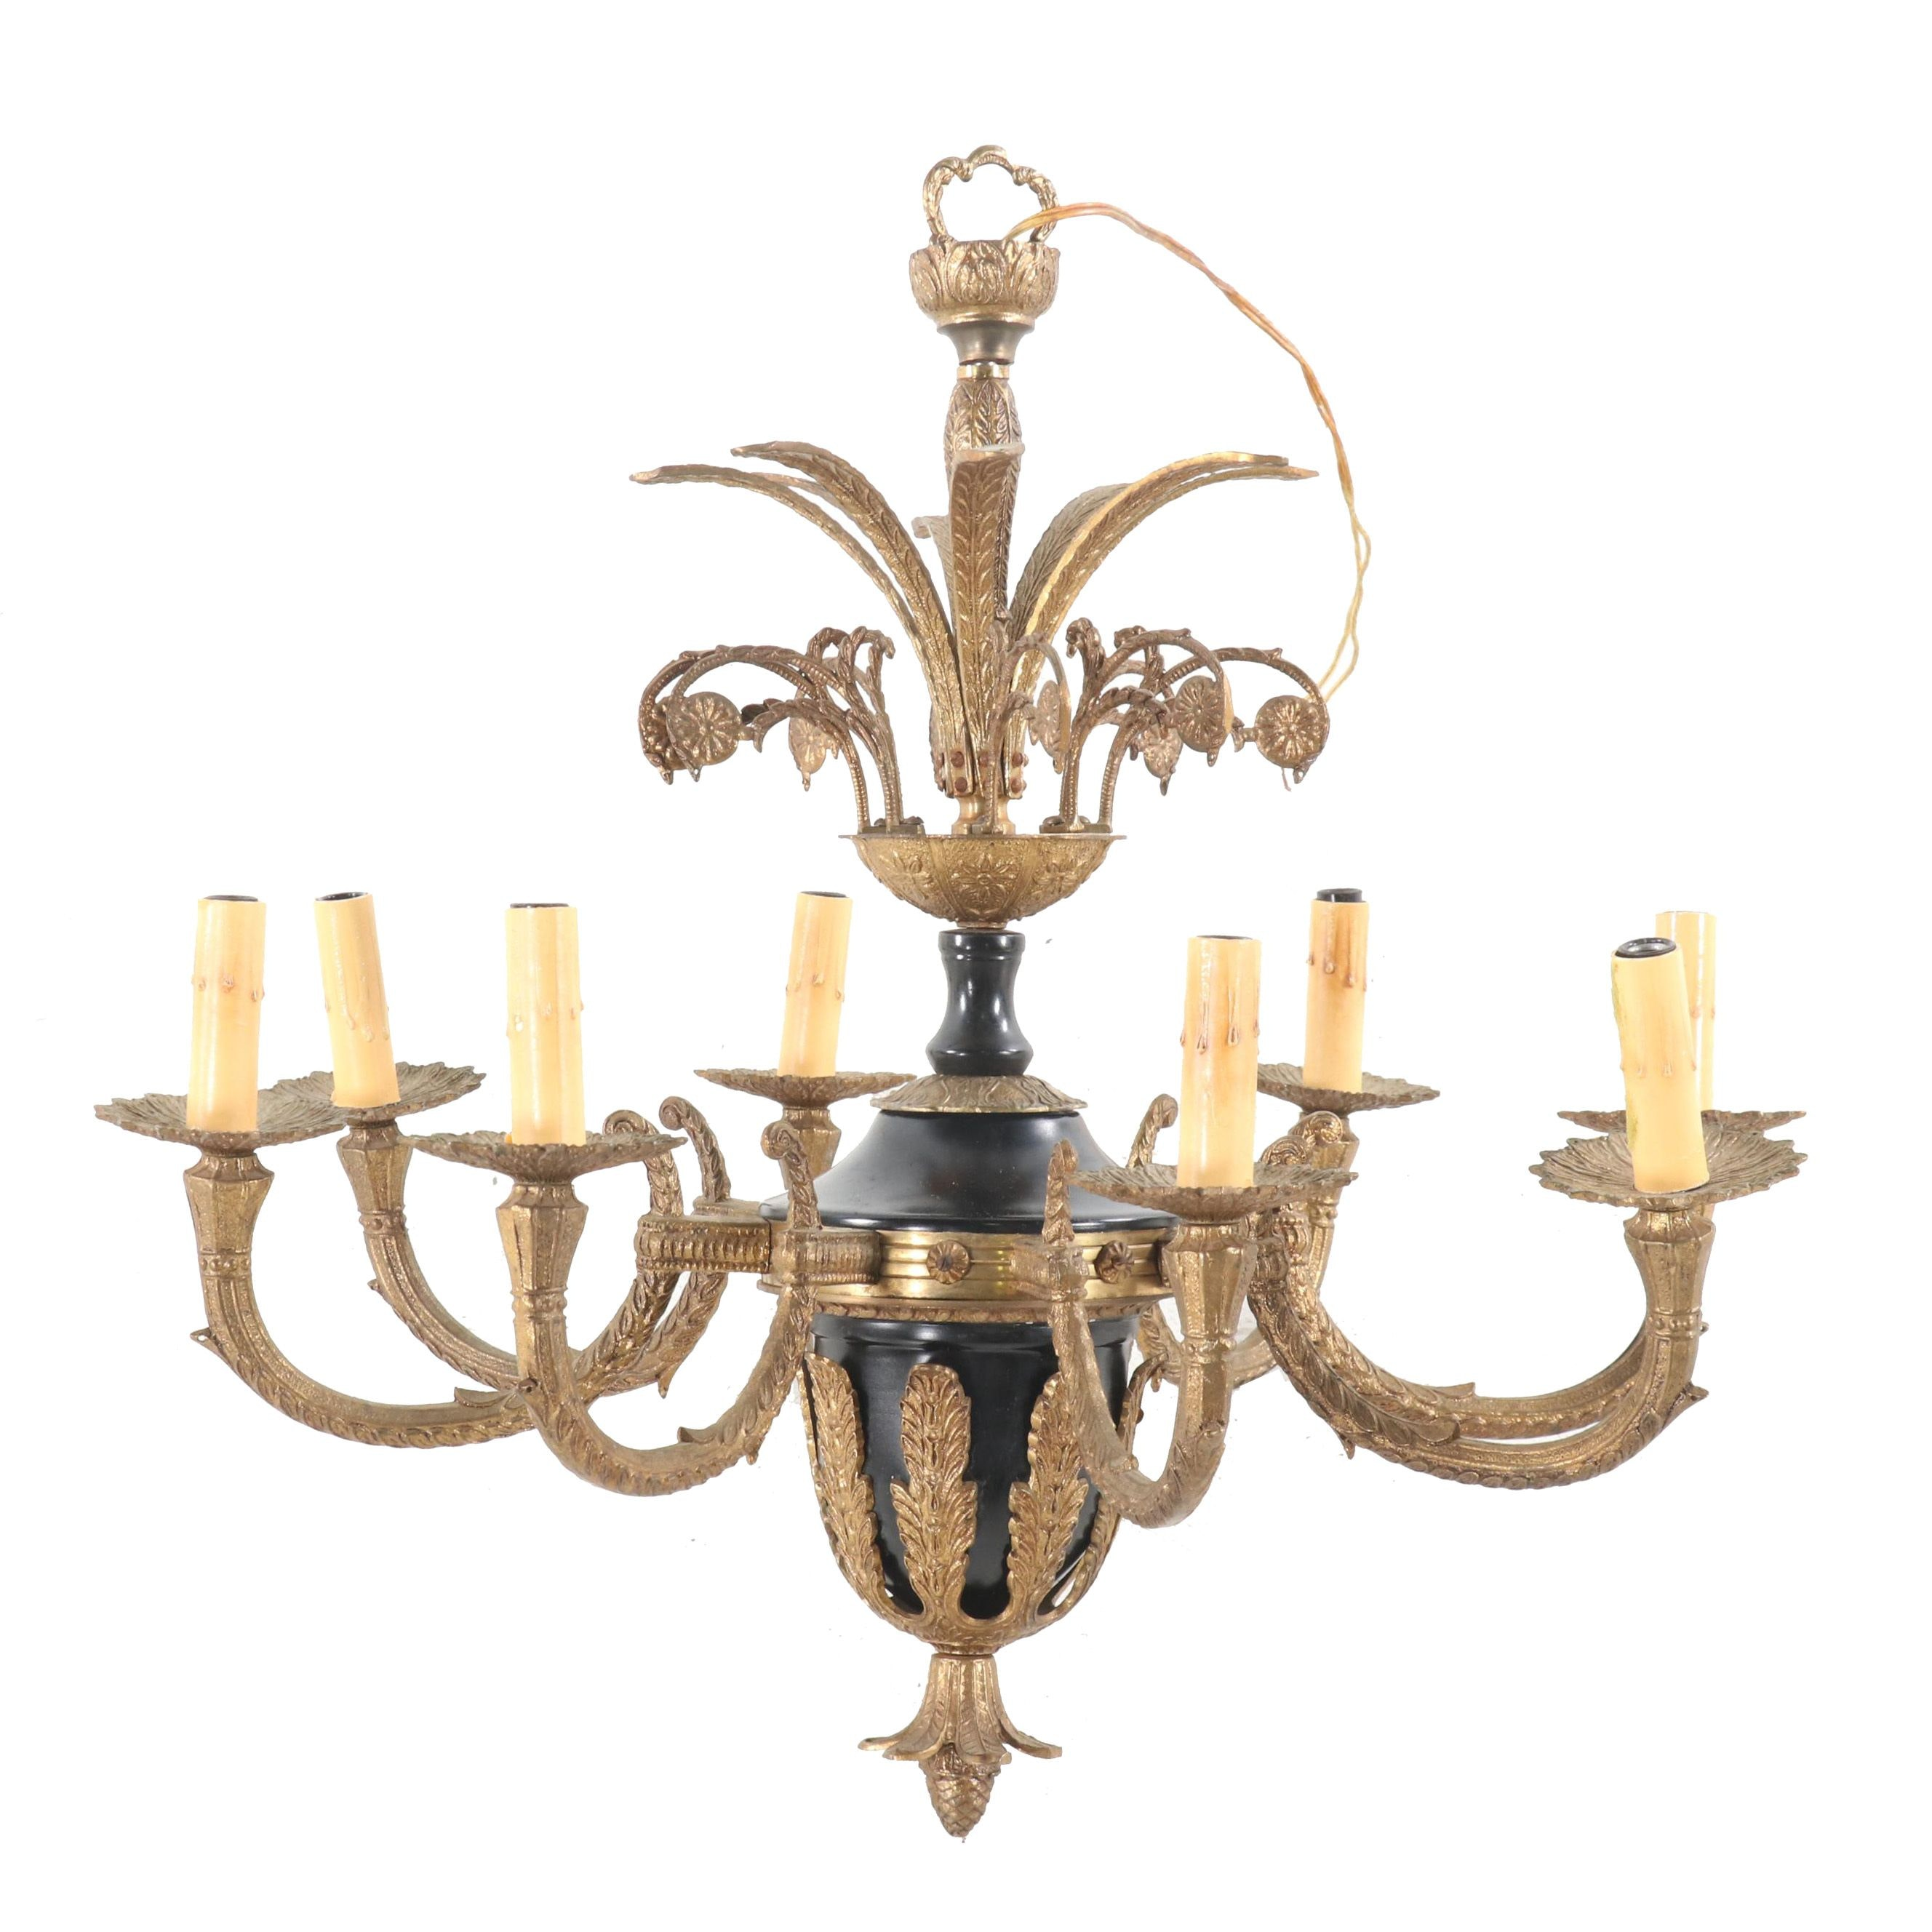 Brass and Metal Neoclassical Style Faux Candle Chandelier, Mid-Century